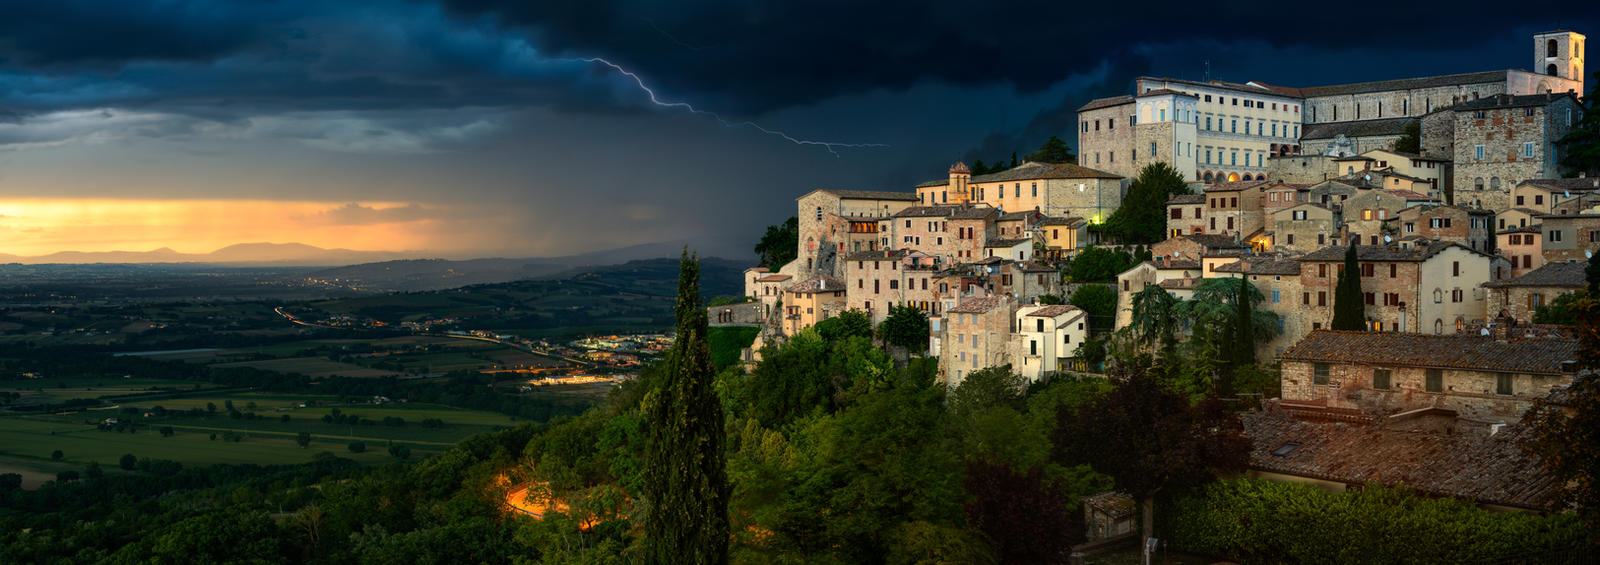 Thunderstorm on a sunset in Todi by AlexGutkin